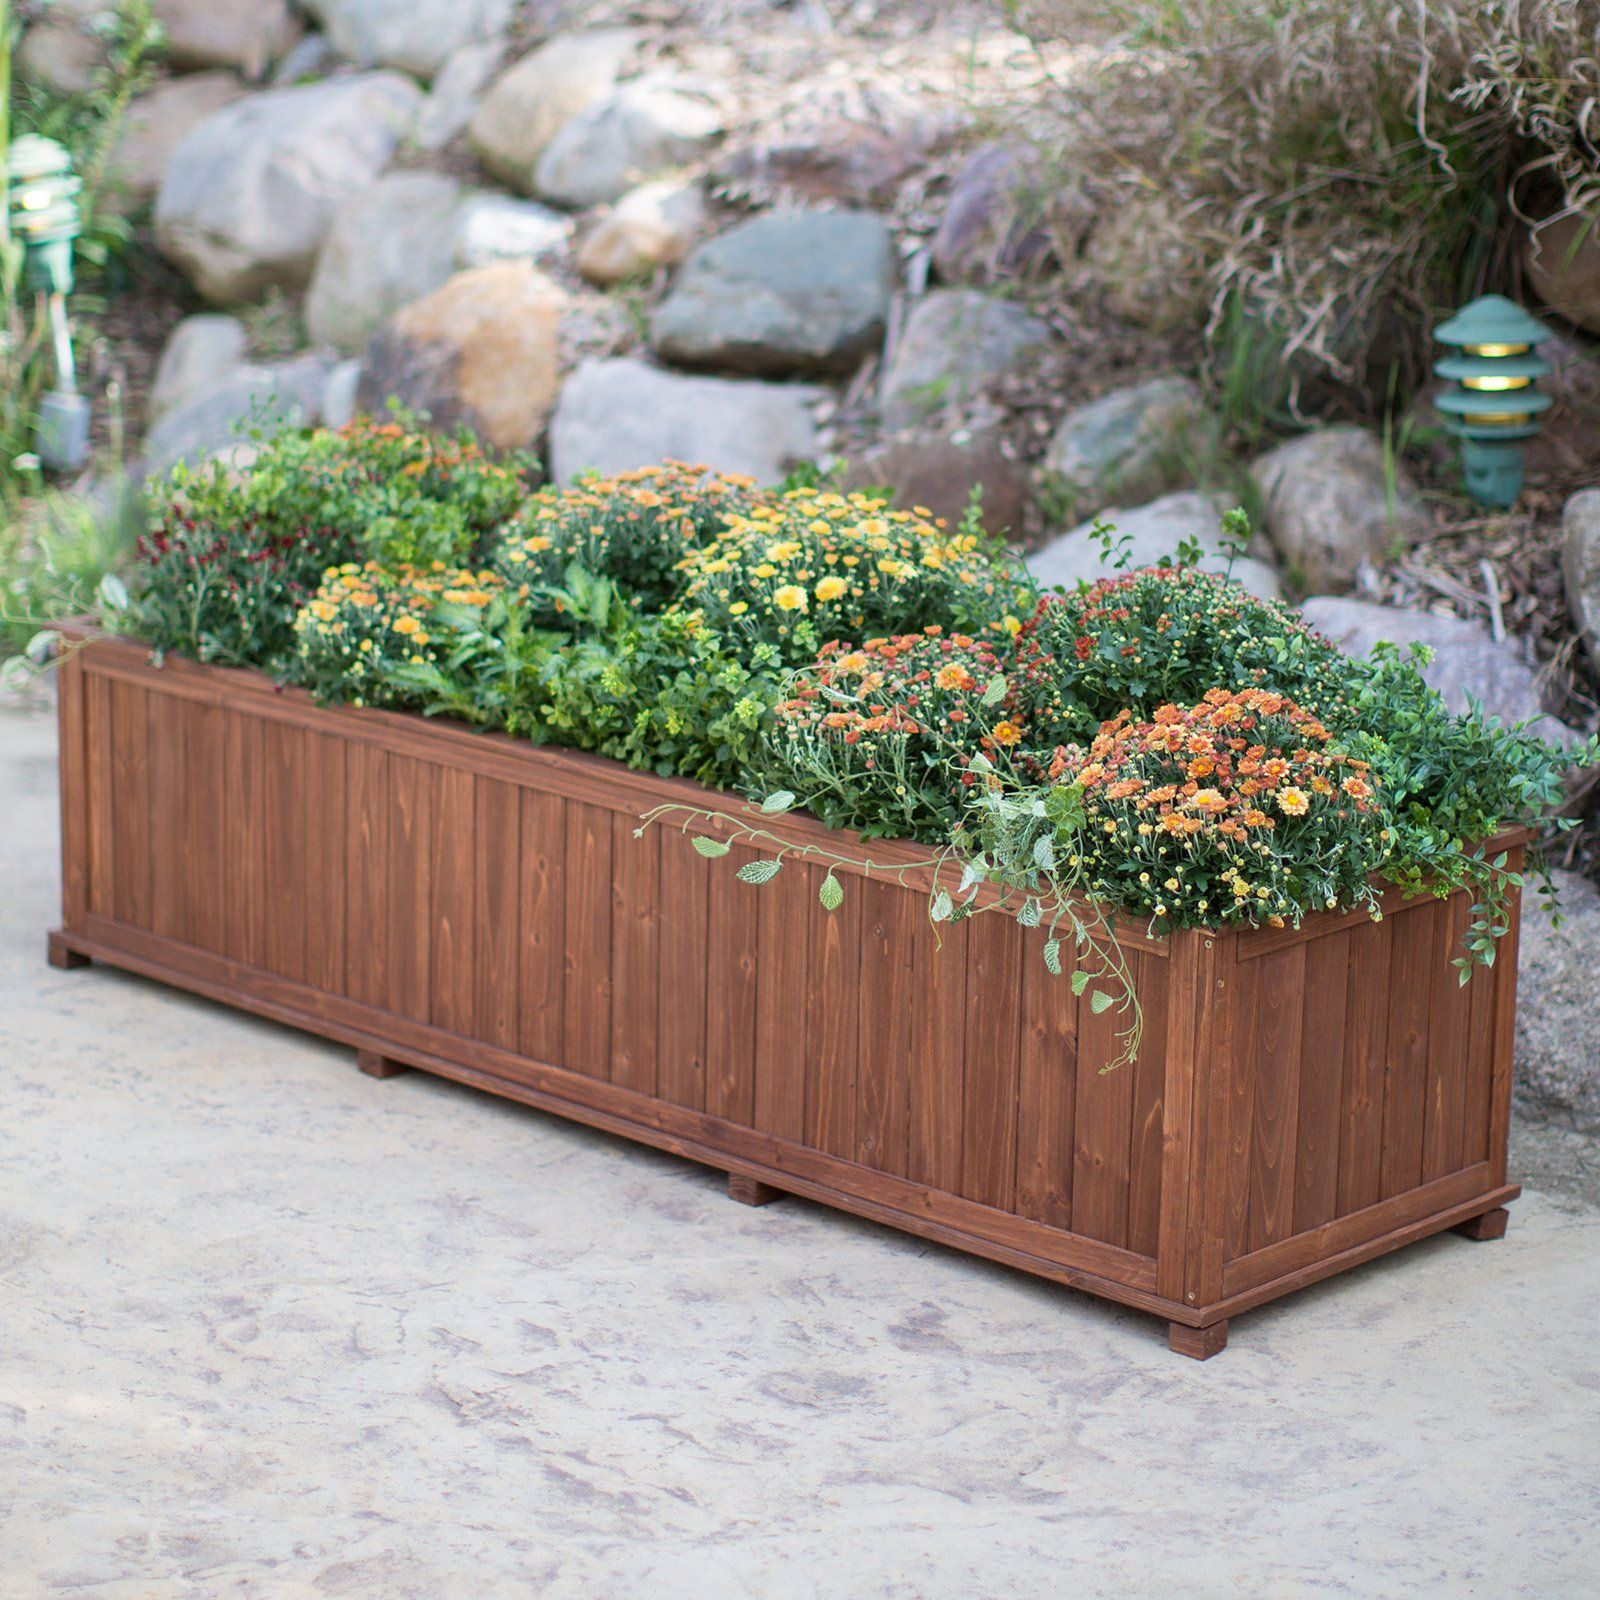 Coral Coast Rectangular Wood Aster Patio Planter Box 70 in and